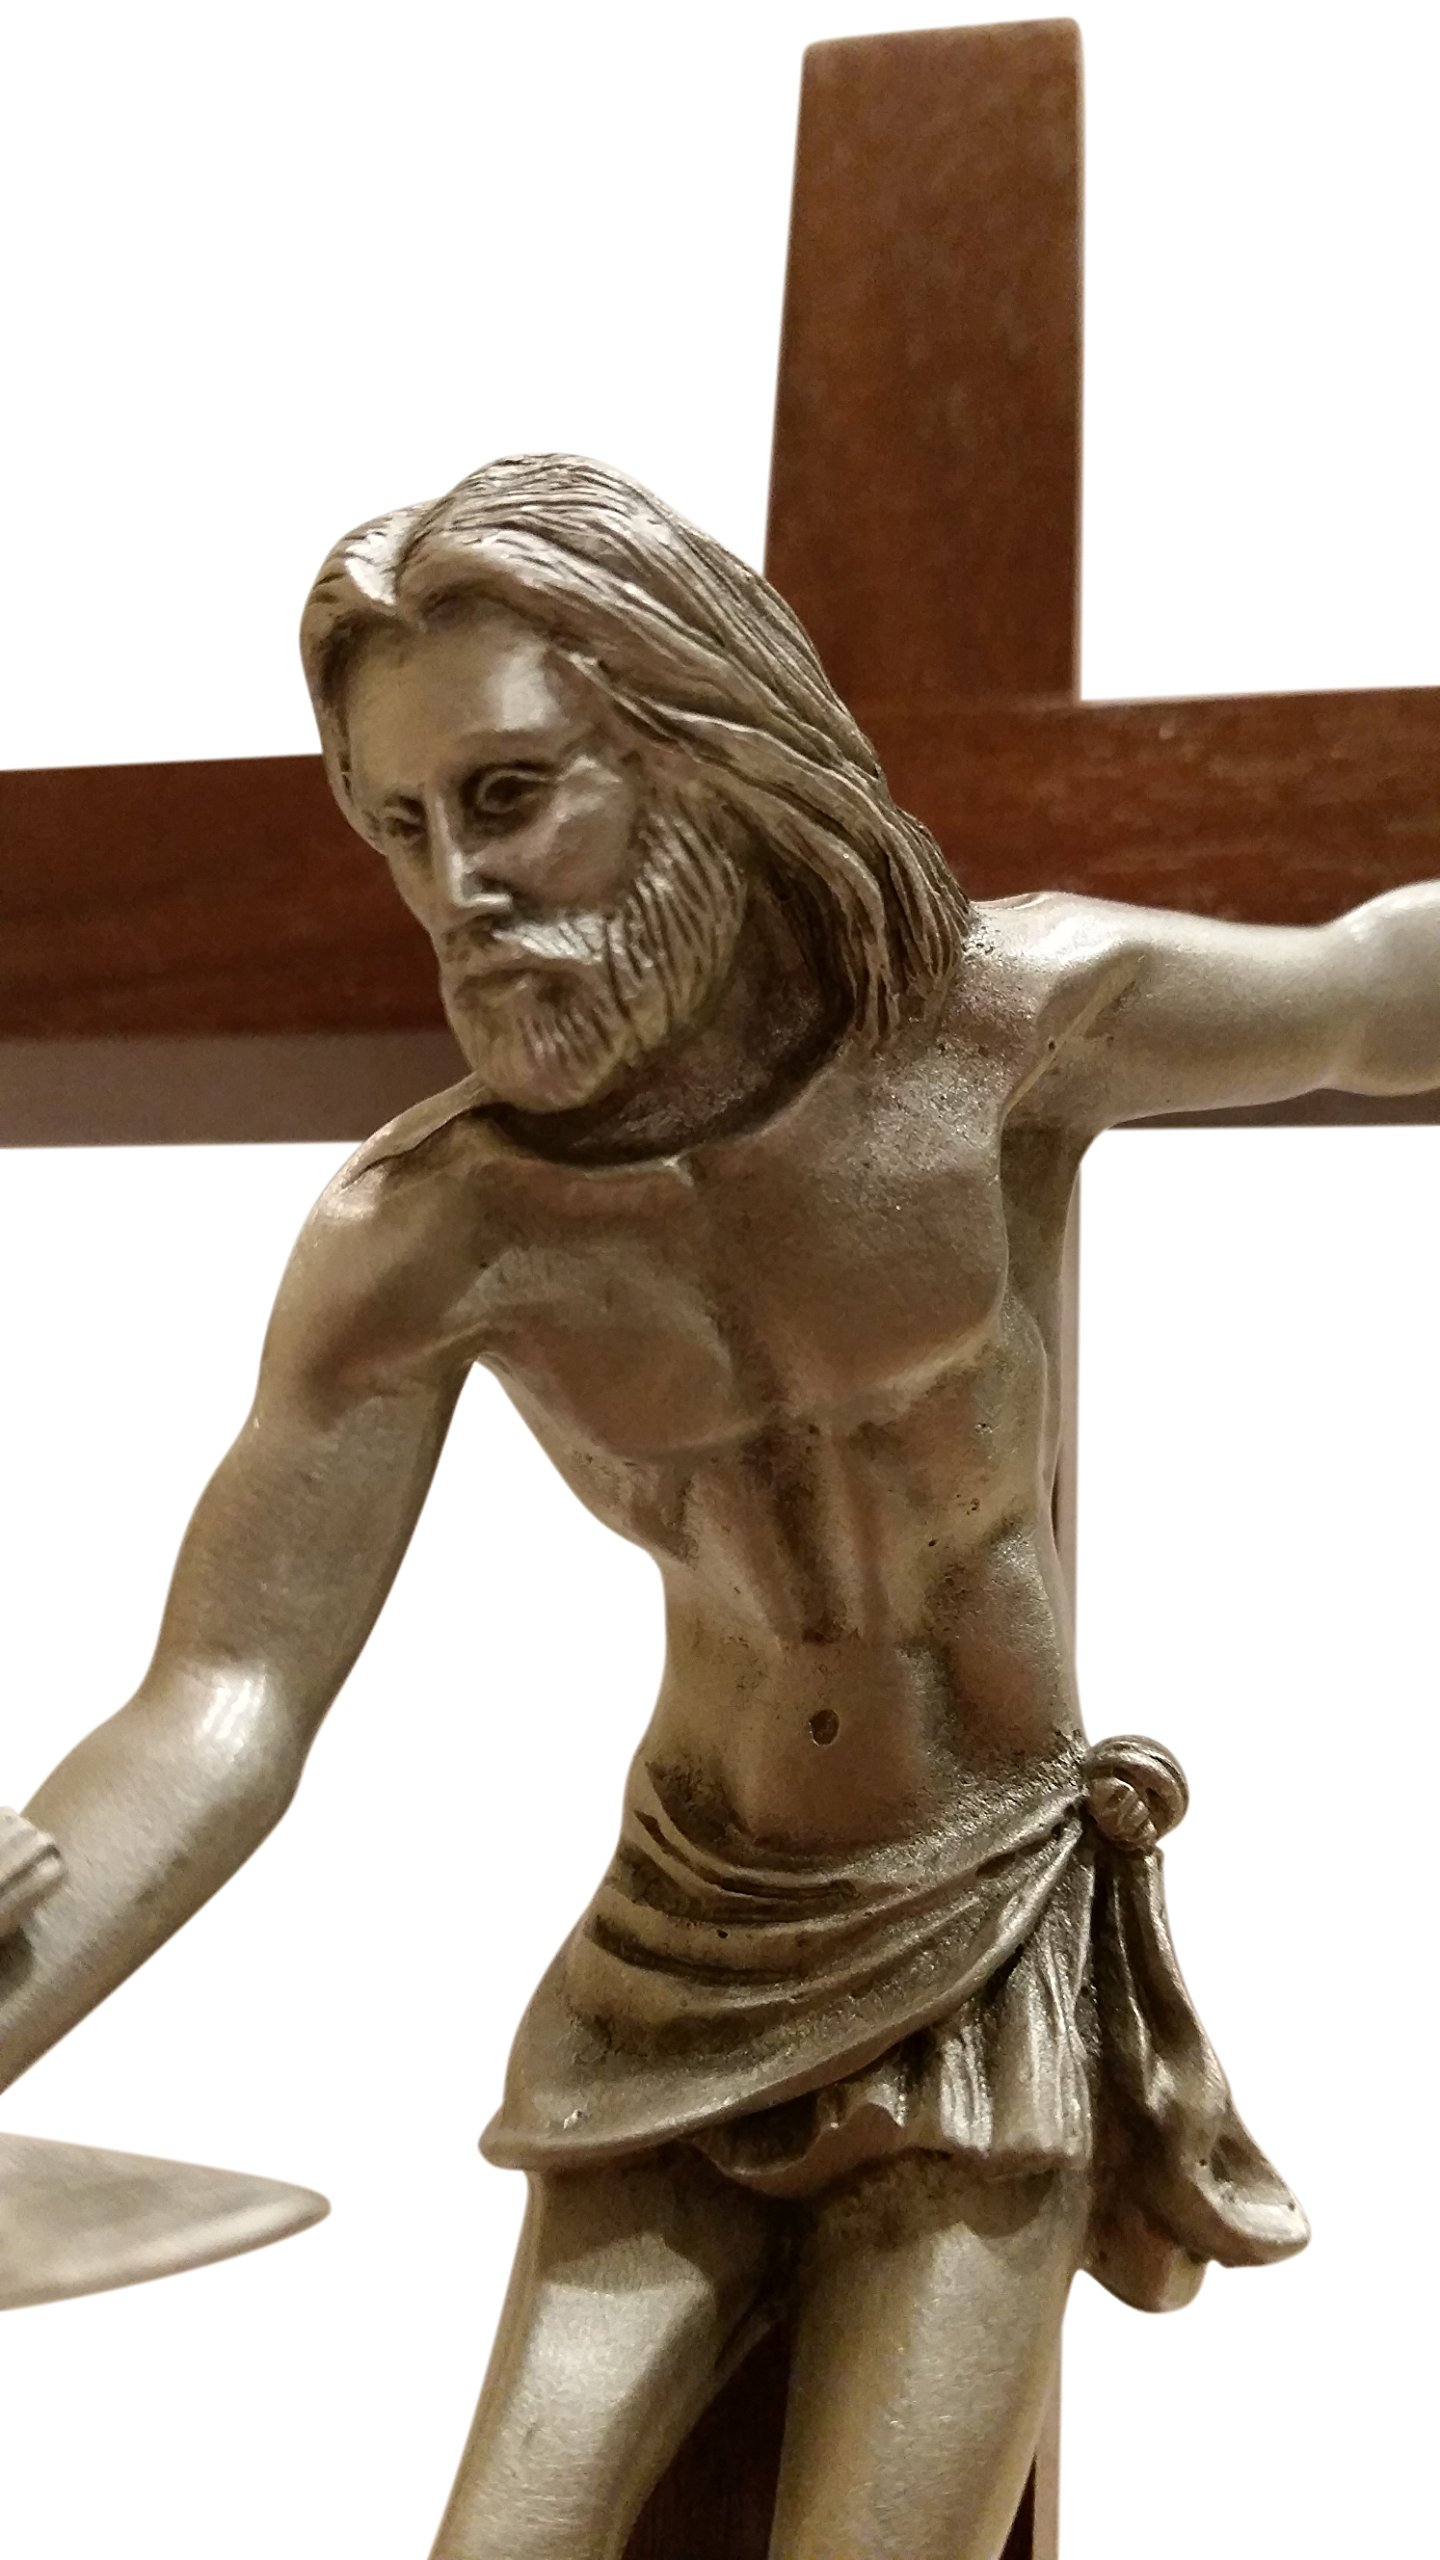 Inspire Nation Gift of the Spirit Walnut Wood Standing Wall Cross Crucifix with Removable Base for Hanging 8 inches by Inspire Nation (Image #3)